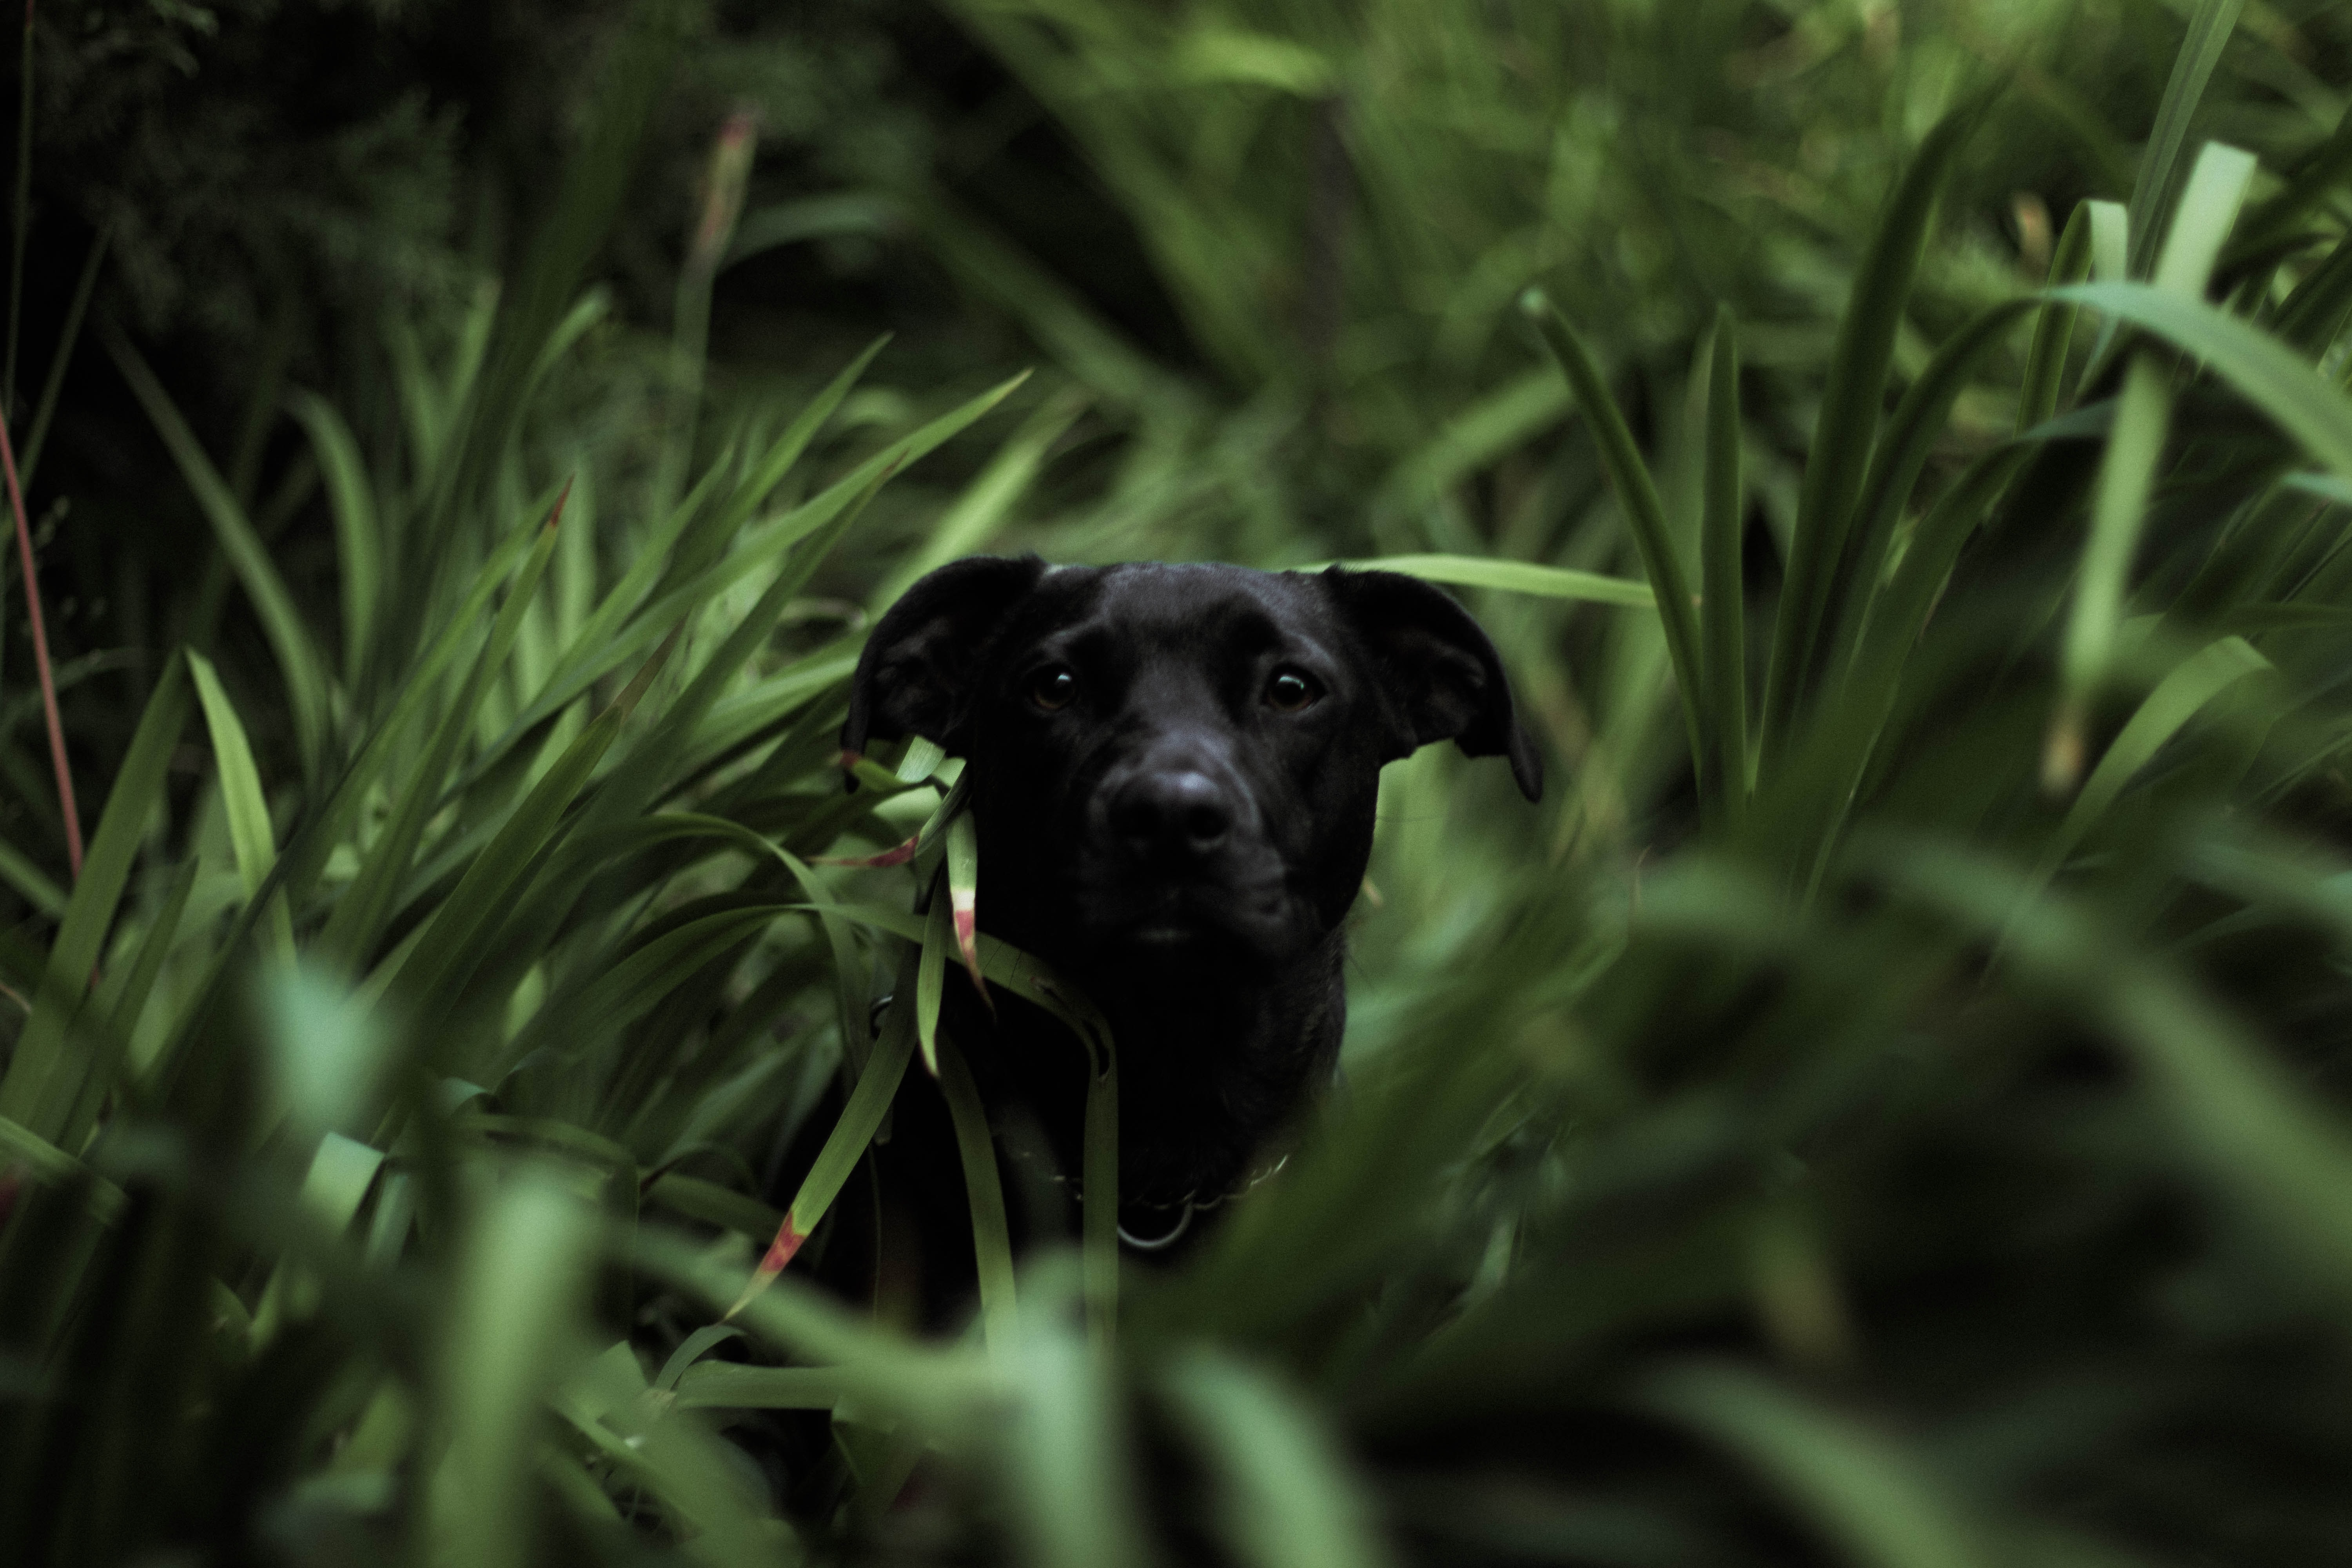 short-coated black dog in grass field in tilt shift photography